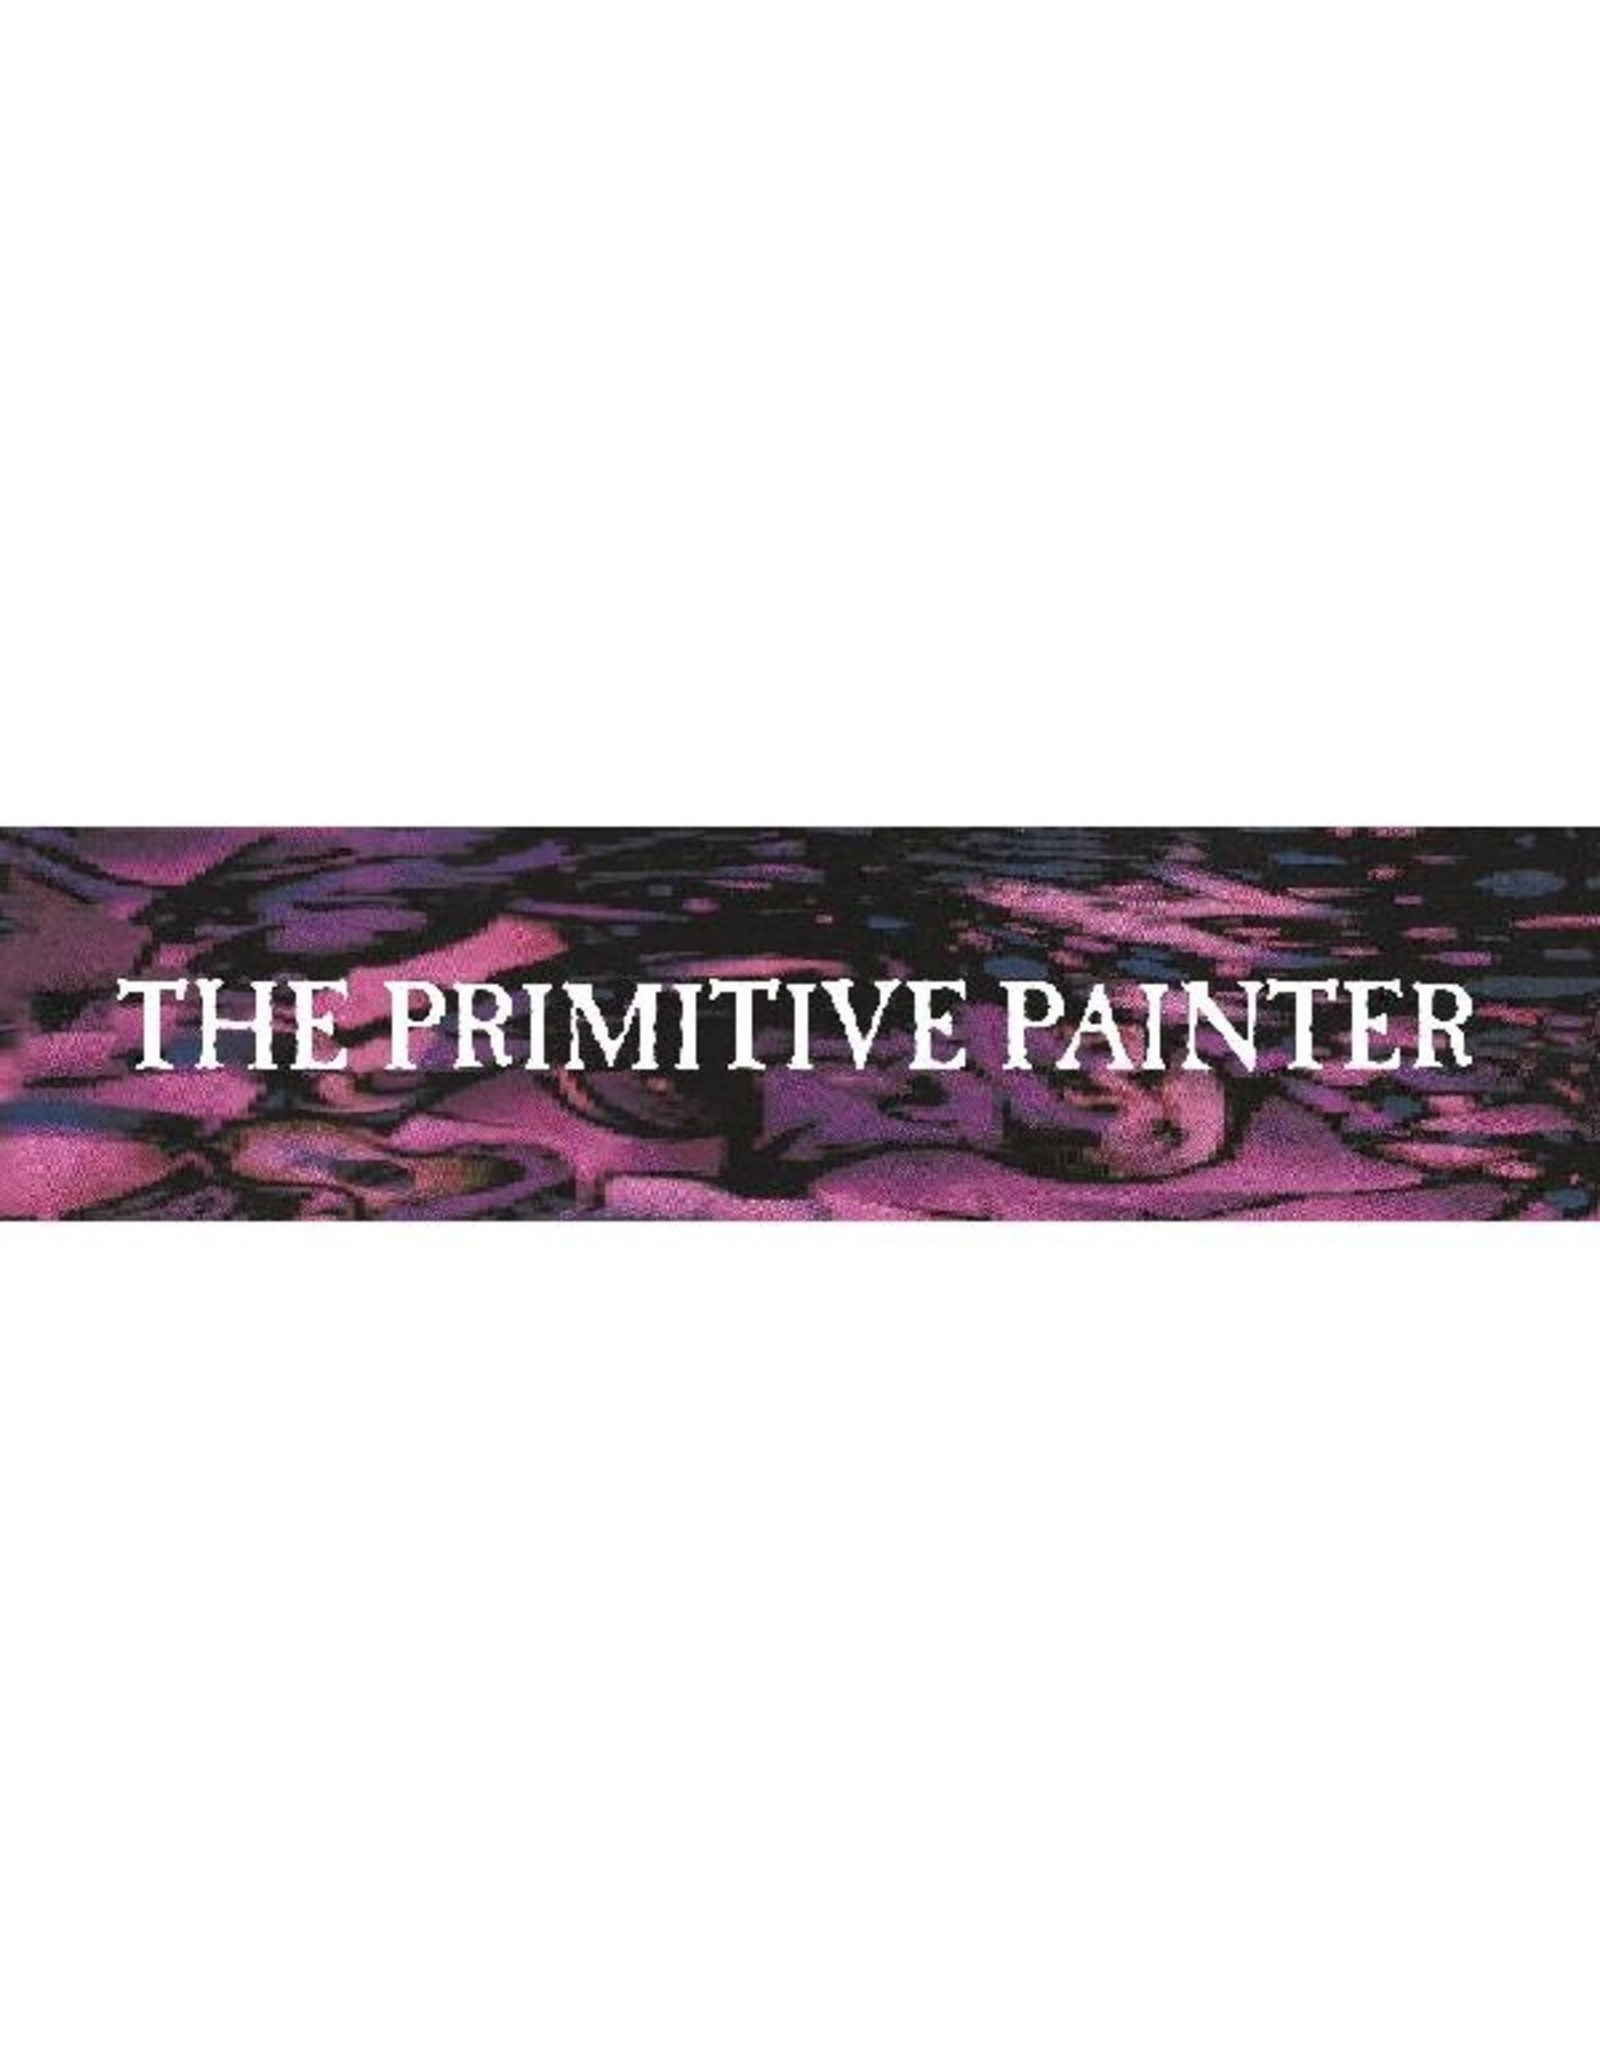 New Vinyl The Primitive Painter - S/T 2LP